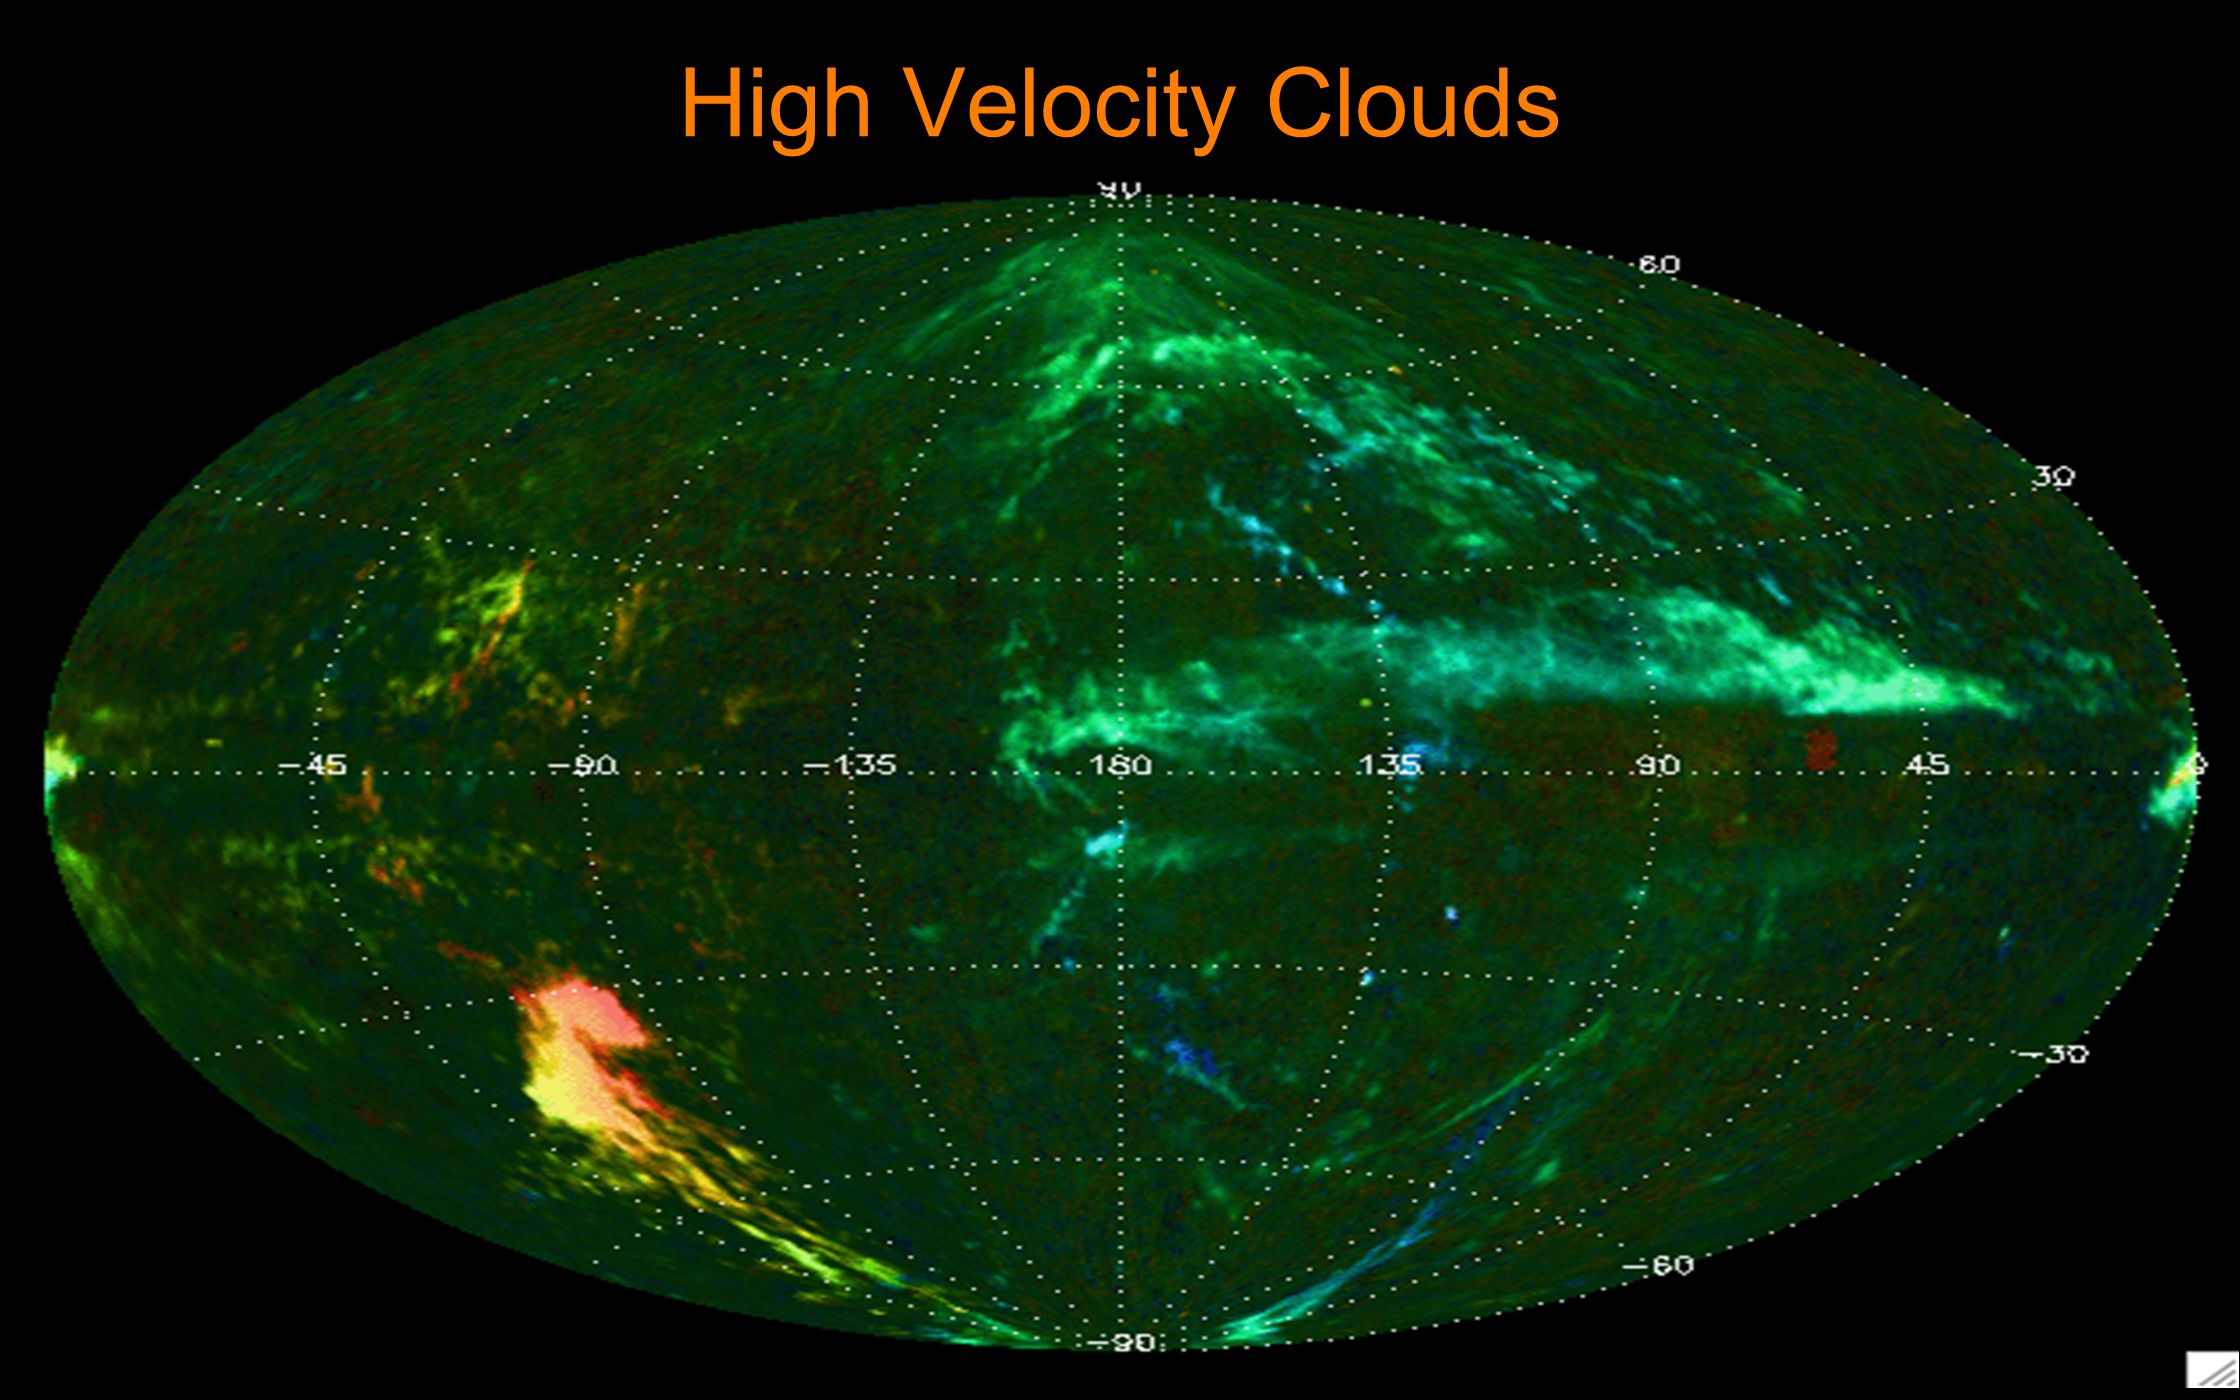 High Velocity Clouds